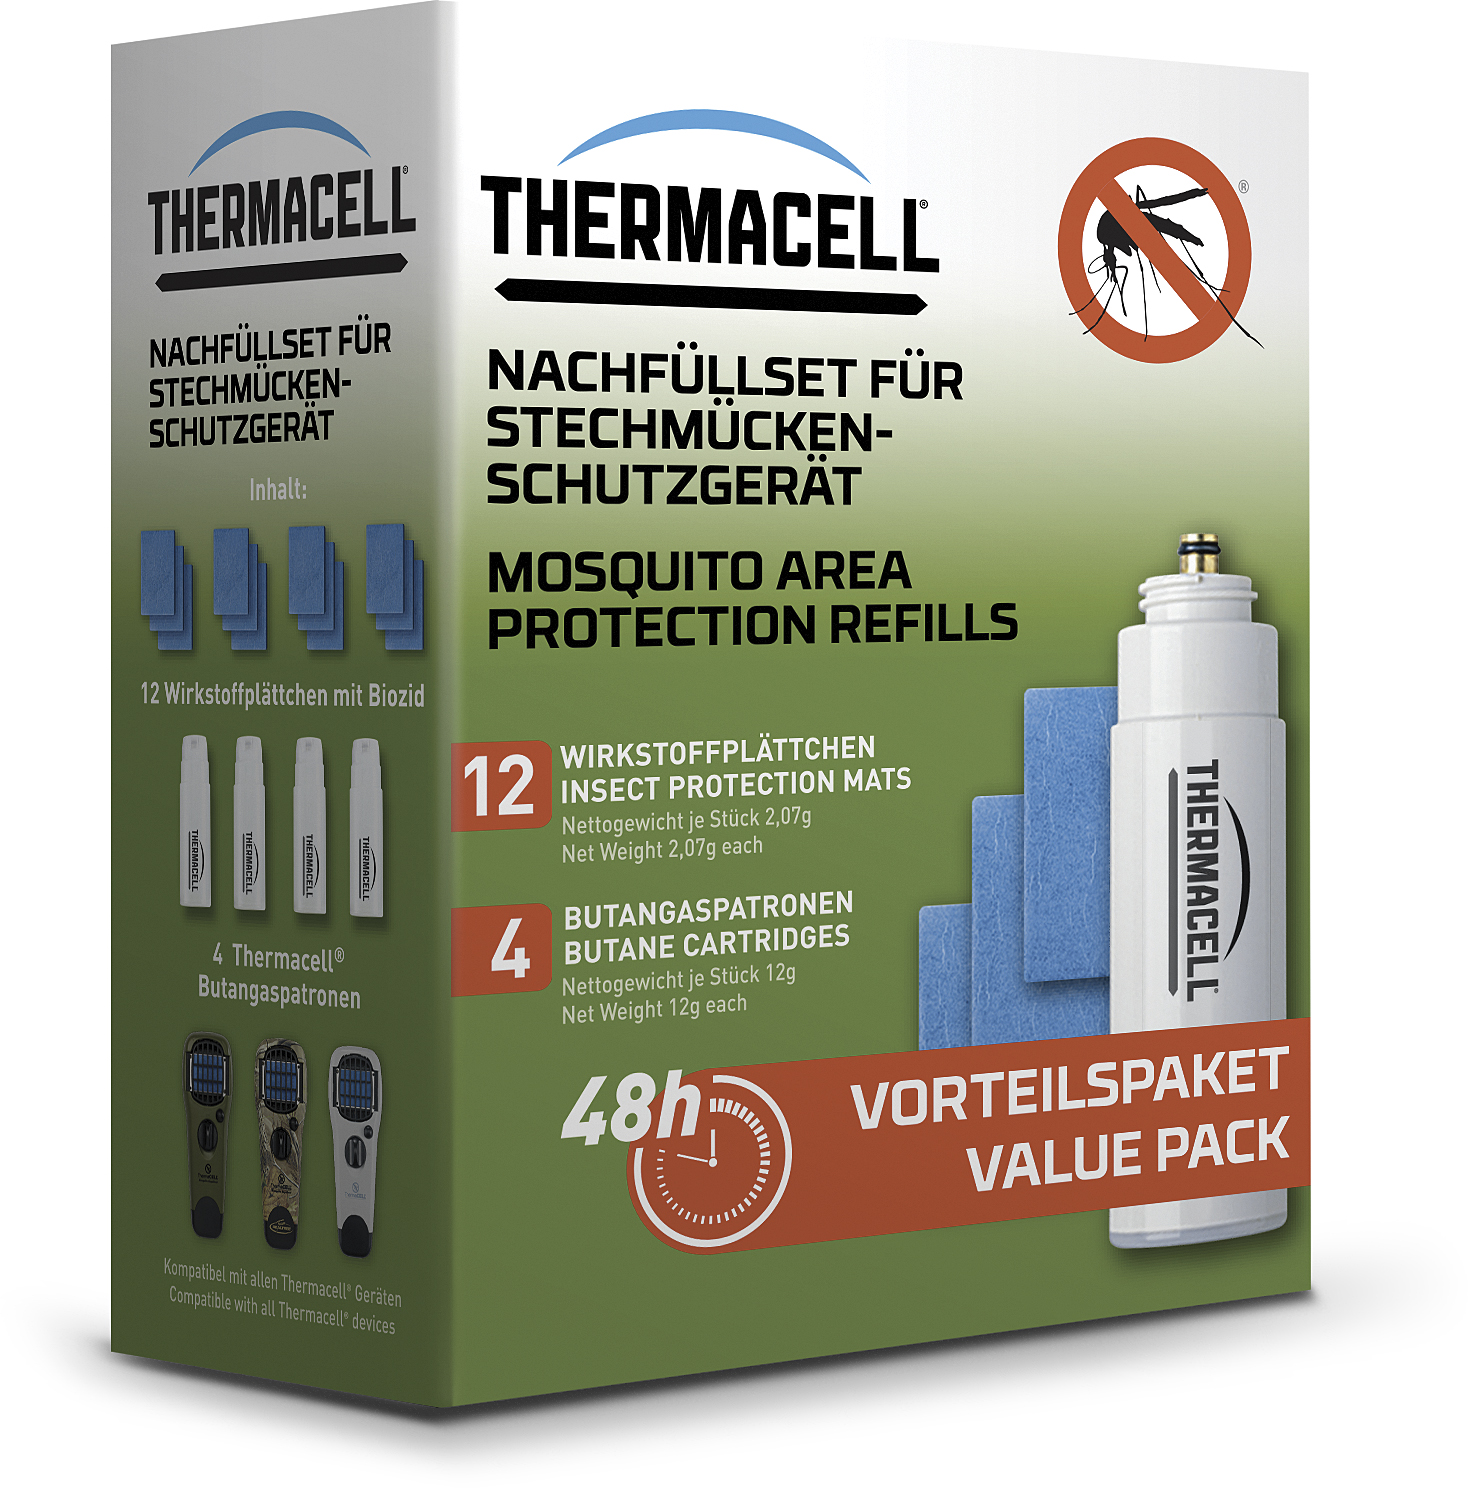 ThermaCell-Thermacell Handgeräte Nachfüller R-4-1 - Gerlinger.de